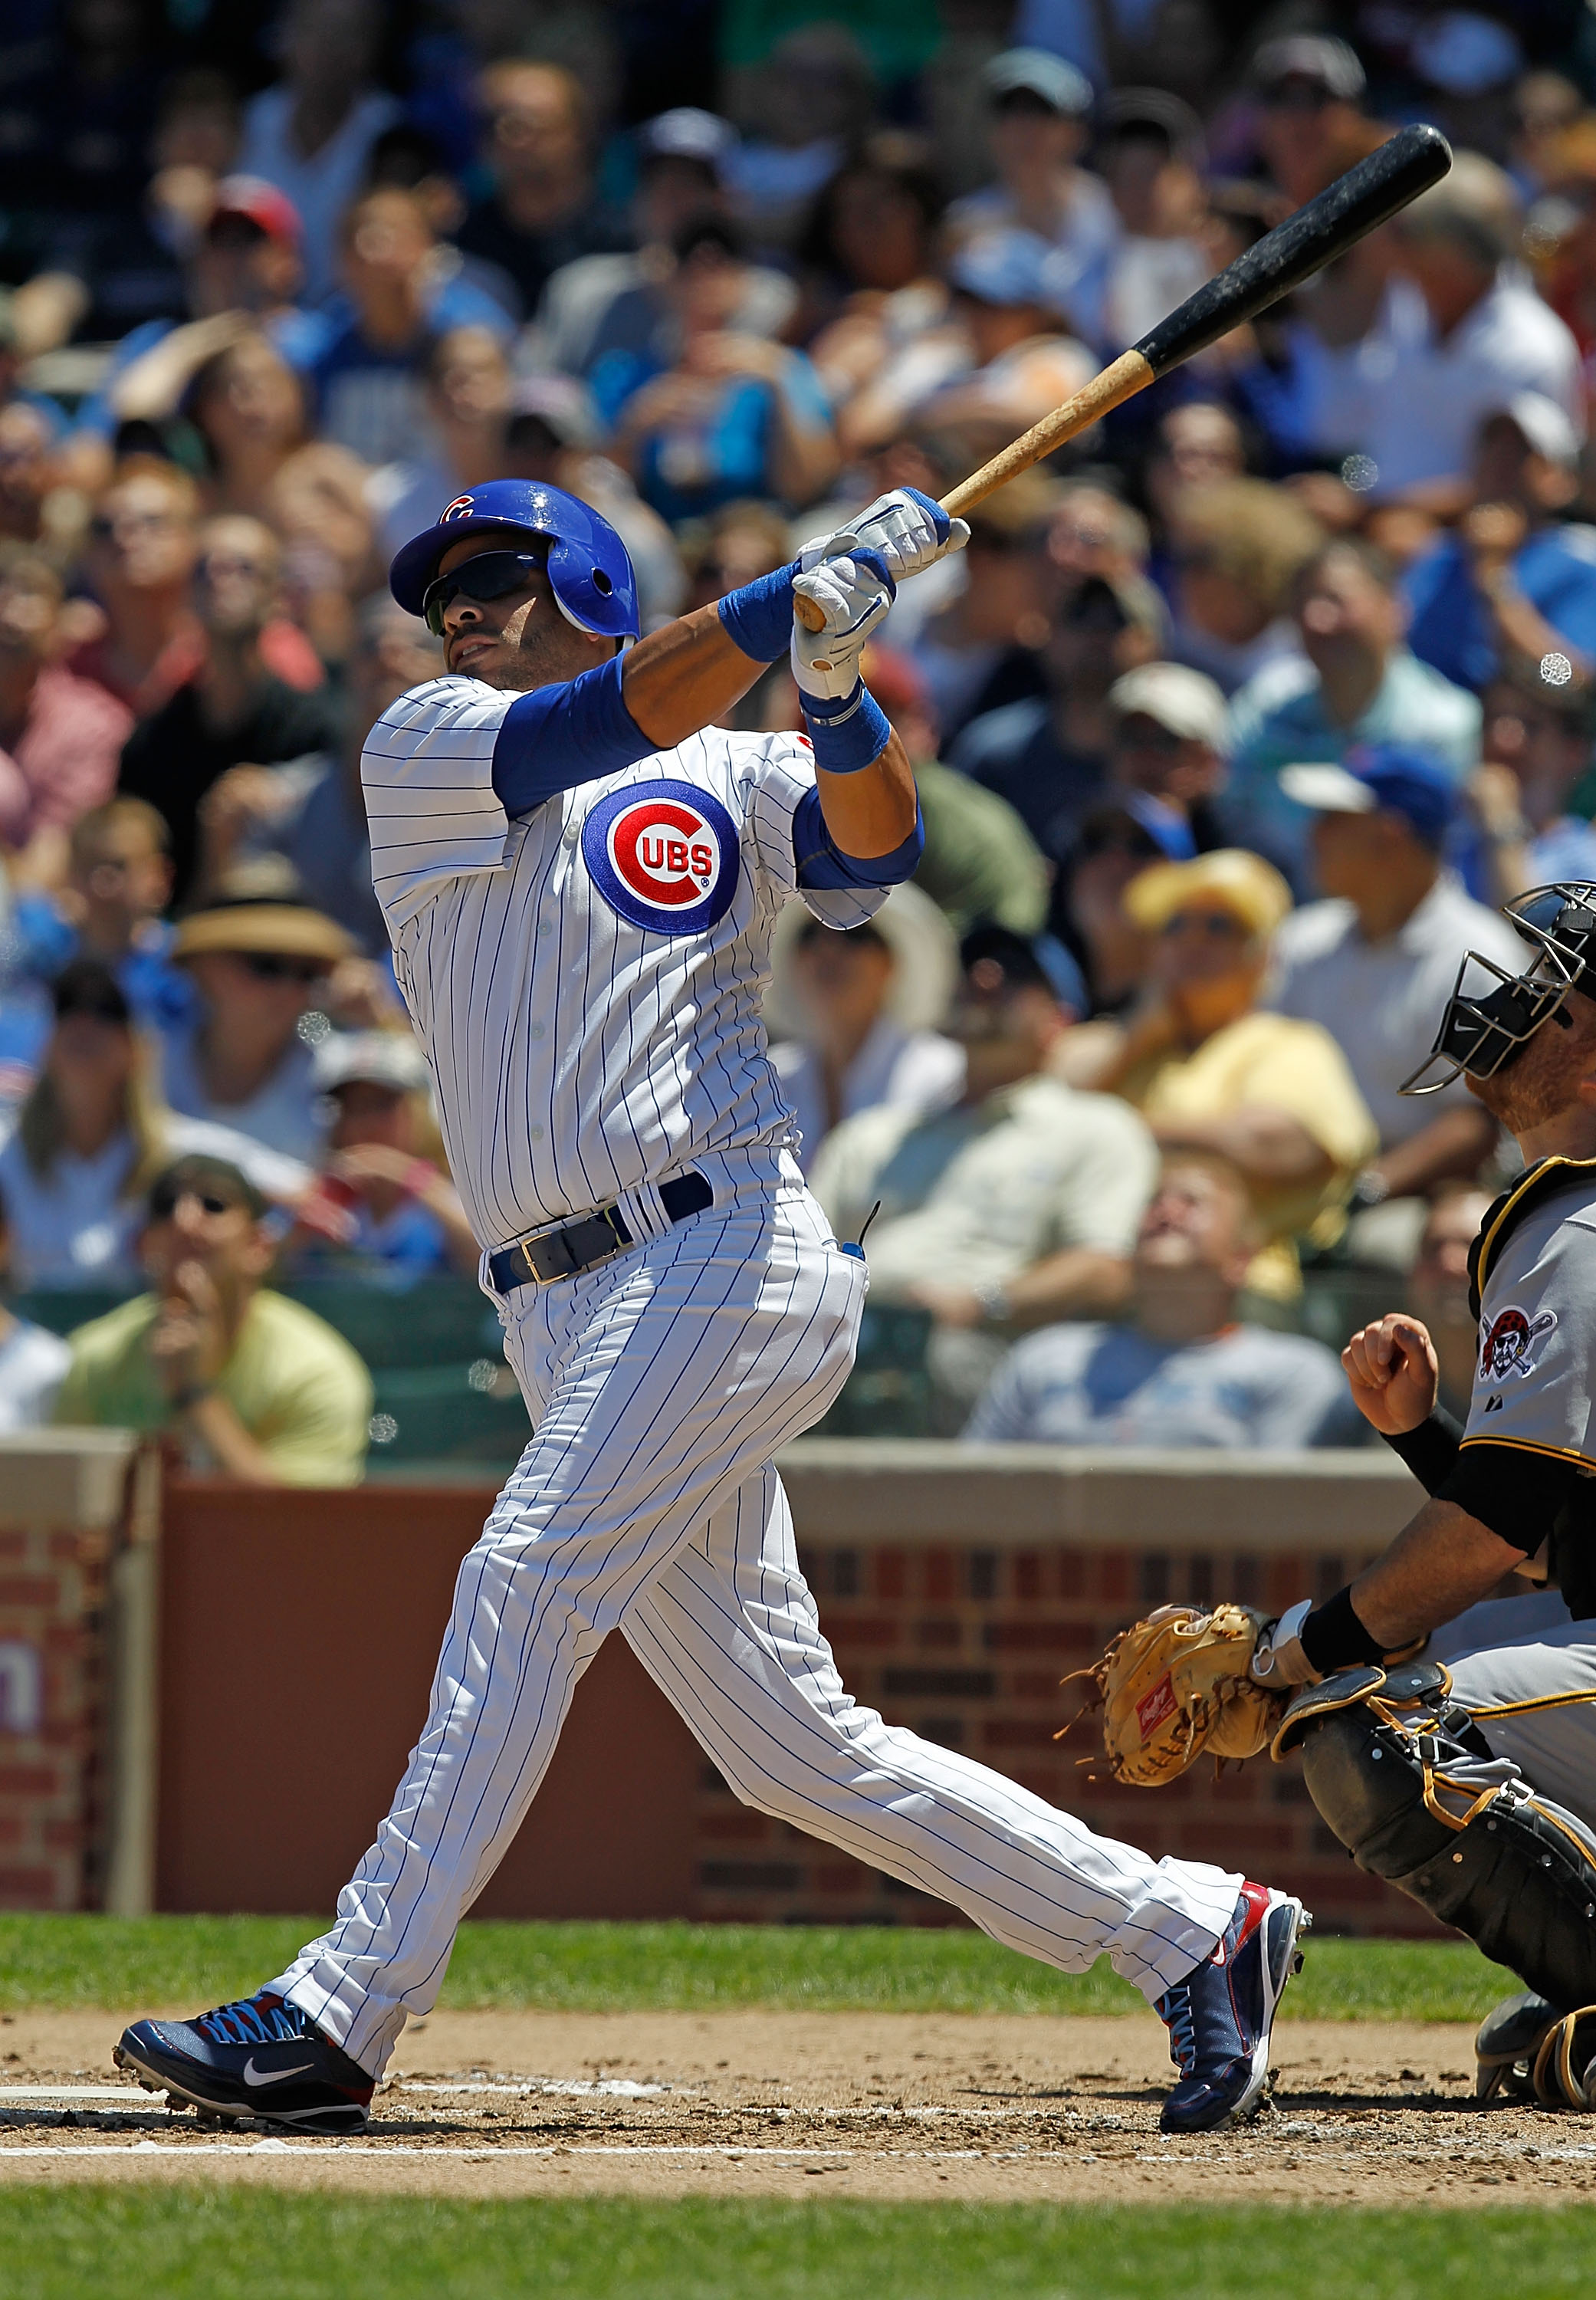 CHICAGO - JUNE 30: Aramis Ramirez #16 of the Chicago Cubs hits the ball against the Pittsburgh Pirates at Wrigley Field on June 30, 2010 in Chicago, Illinois. The Pirates defeated the Cubs 2-0. (Photo by Jonathan Daniel/Getty Images)